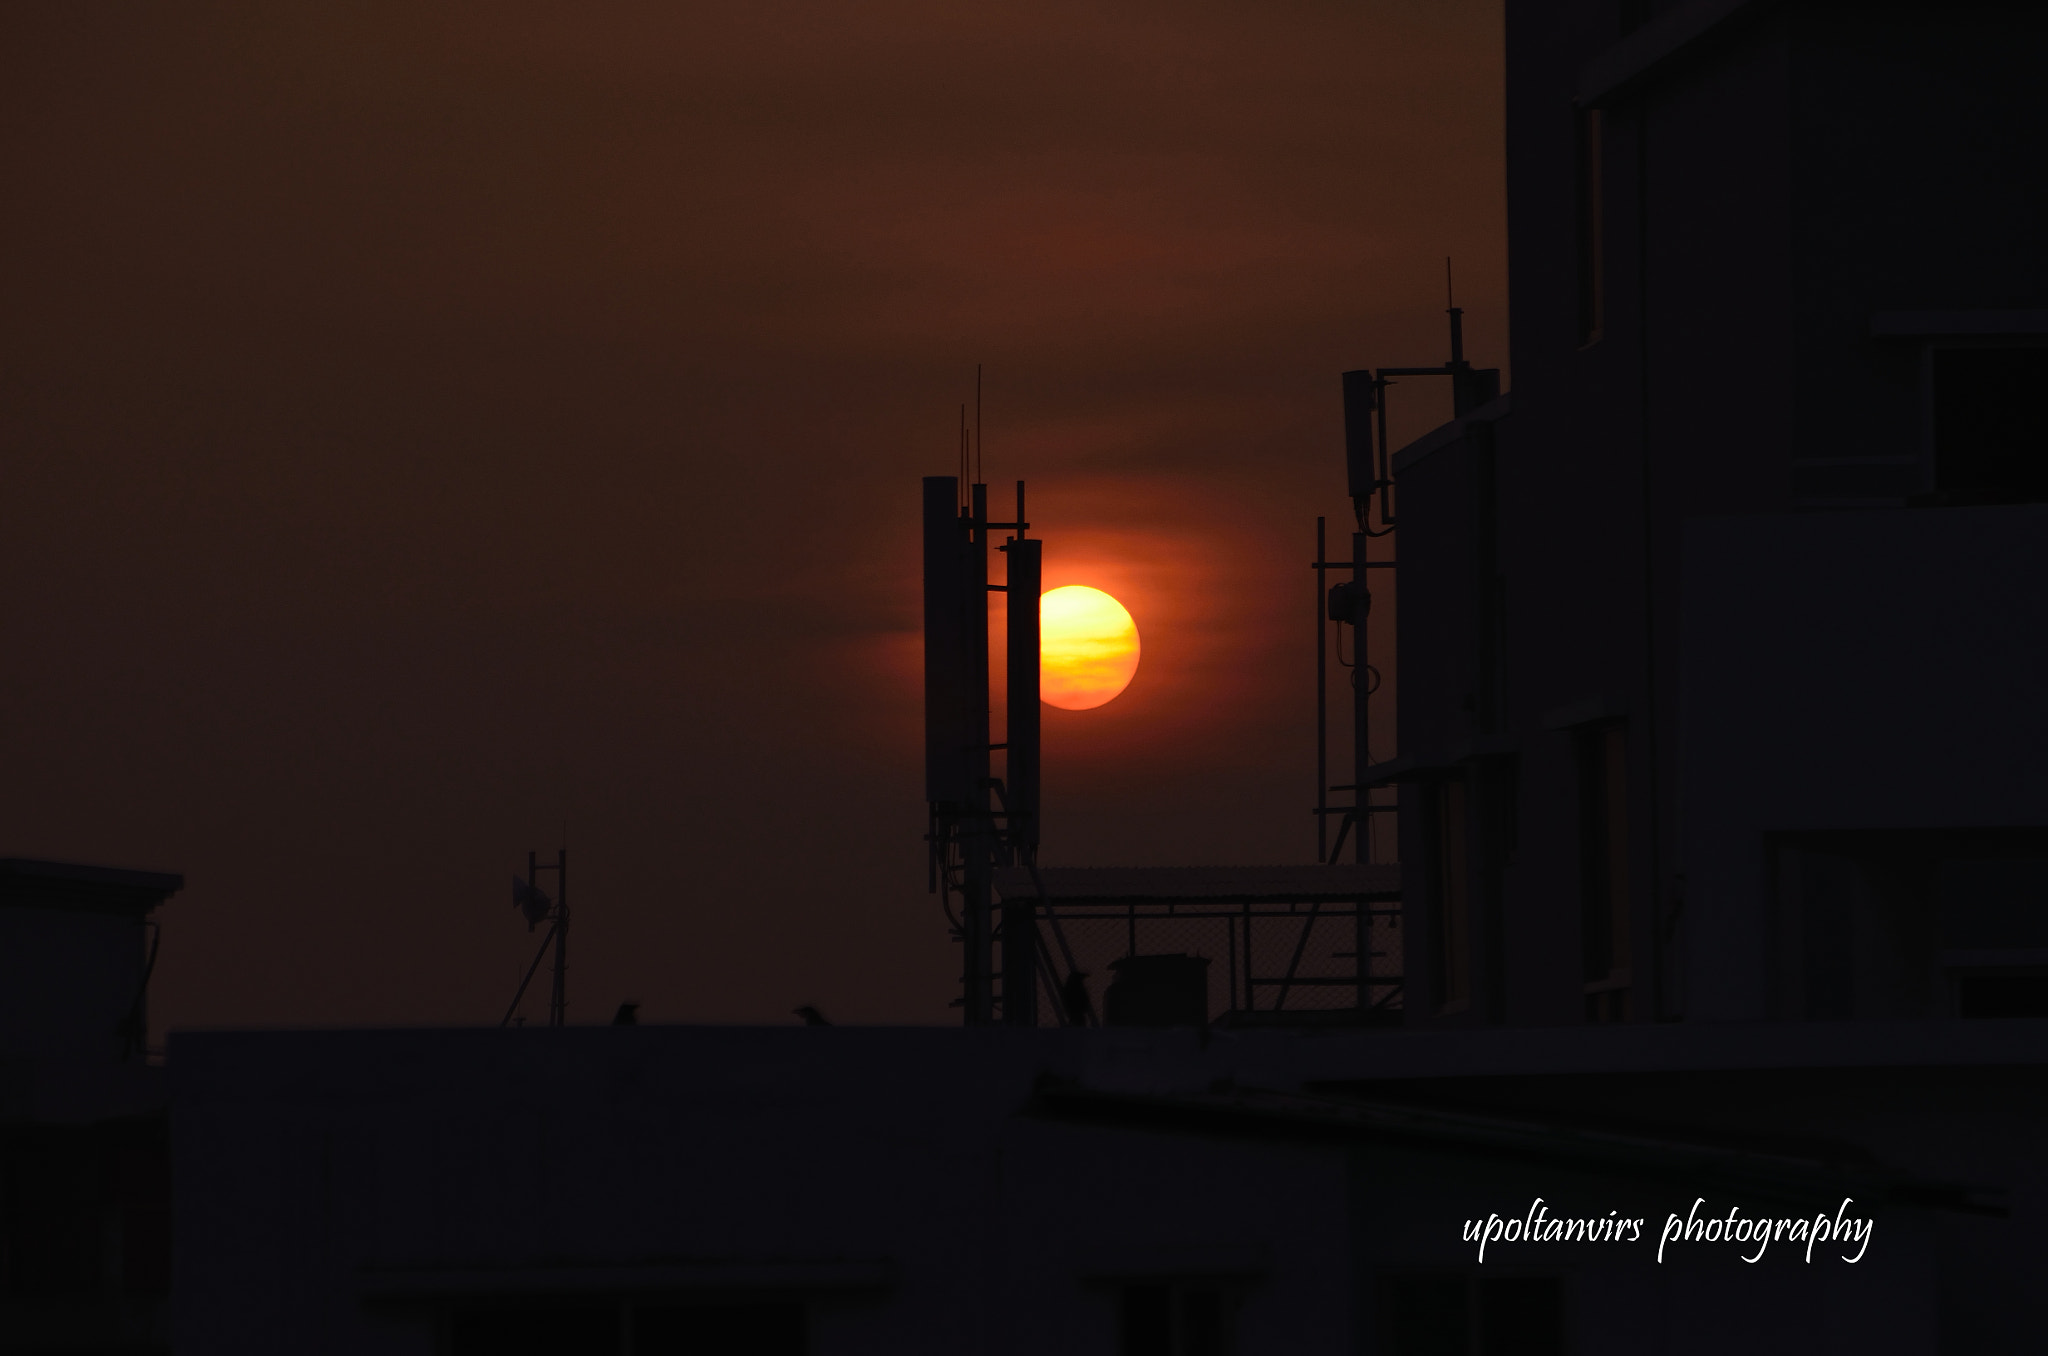 Photograph Sunset by Upol Tanvir on 500px